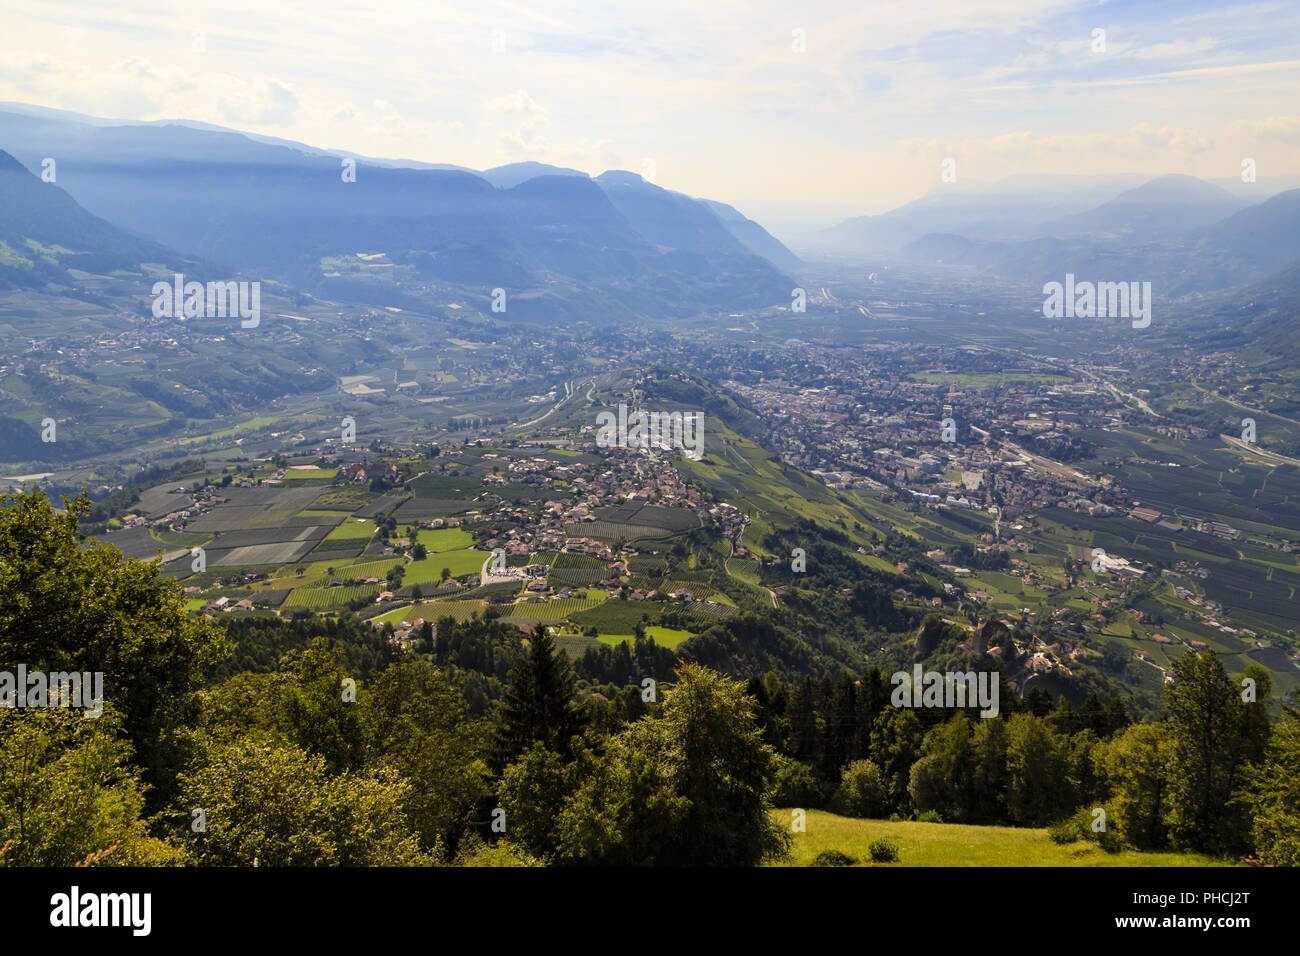 Meran and the valley of Adige, Italy - Stock Image